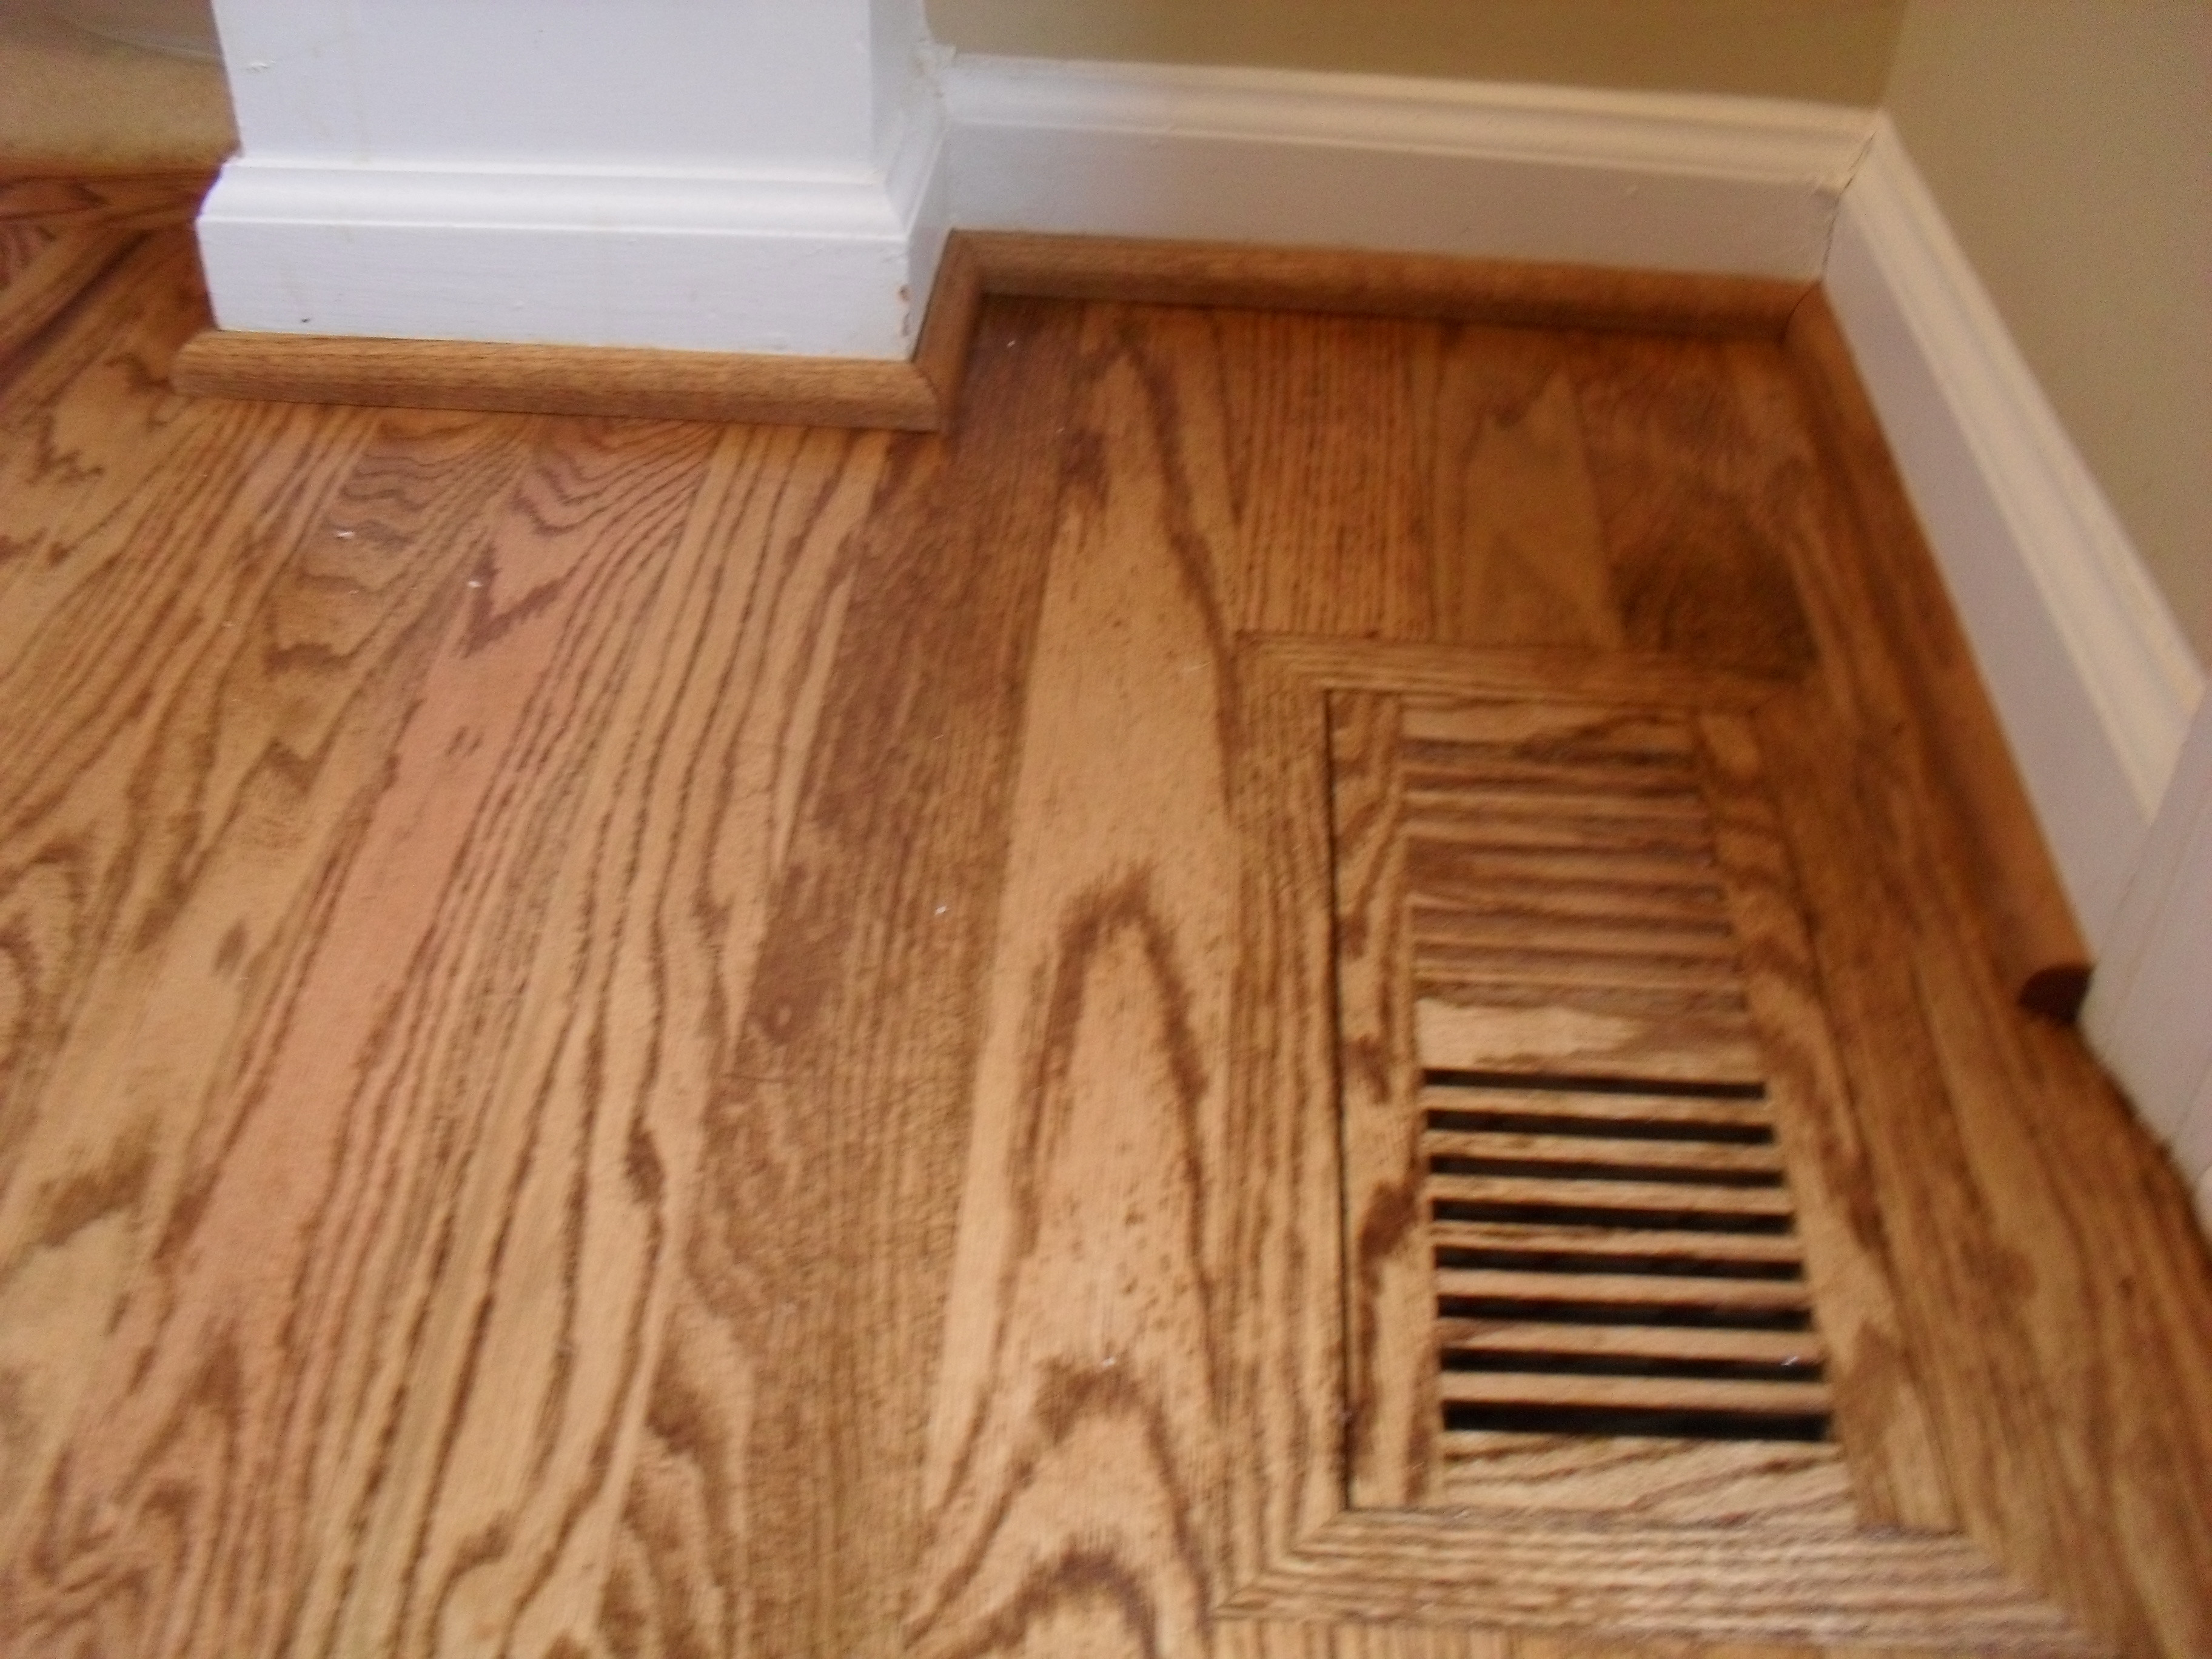 14 Stylish Hardwood Floor Refinishing orange County 2021 free download hardwood floor refinishing orange county of hardwood floor refinishing marietta ga how to diagnose and repair intended for hardwood floor refinishing marietta ga dustless re shine hardwood f